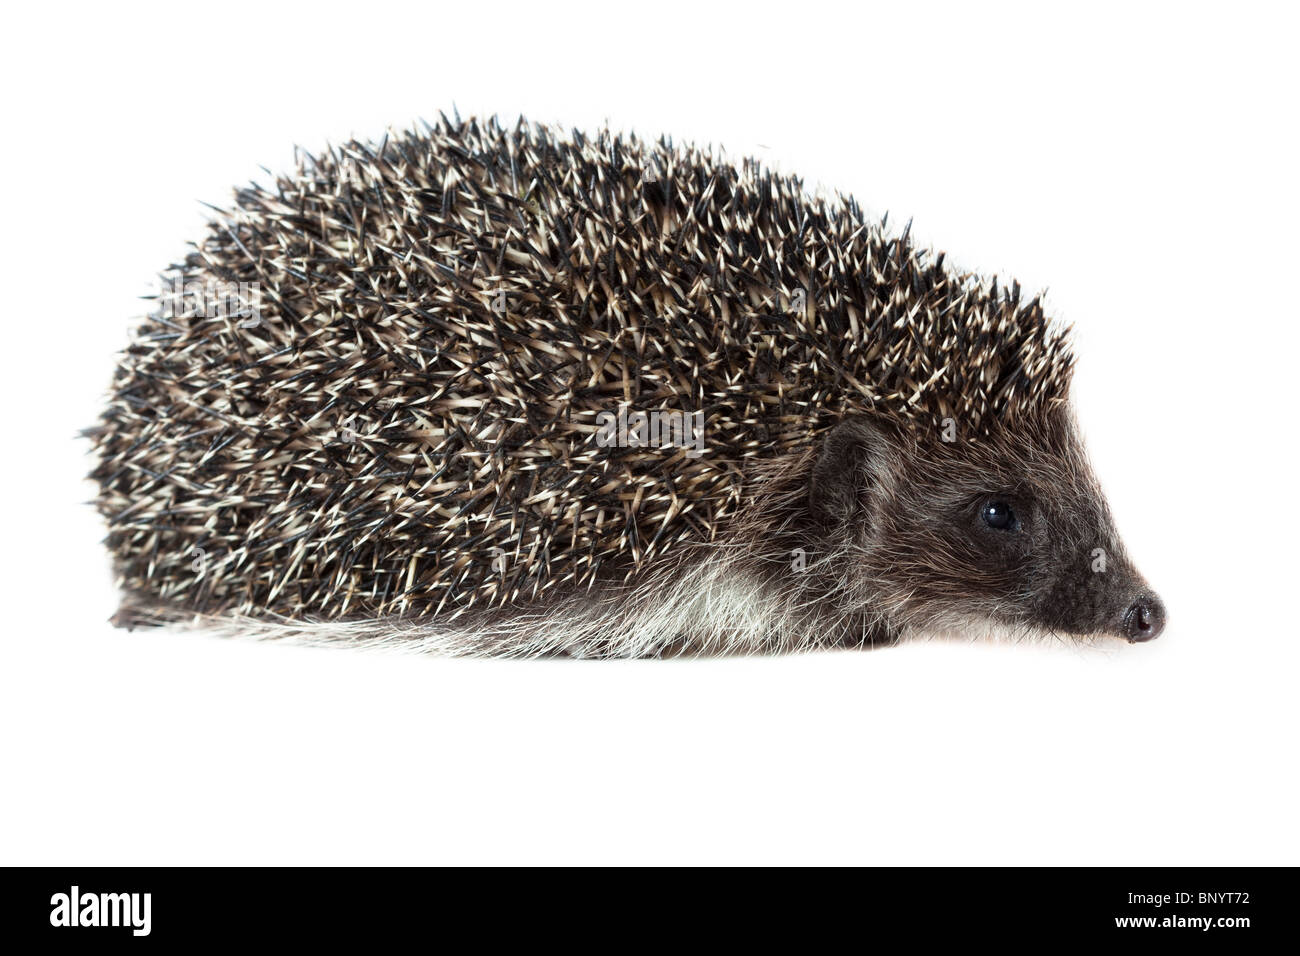 Young hedgehog in studio on the white background, isolated. - Stock Image